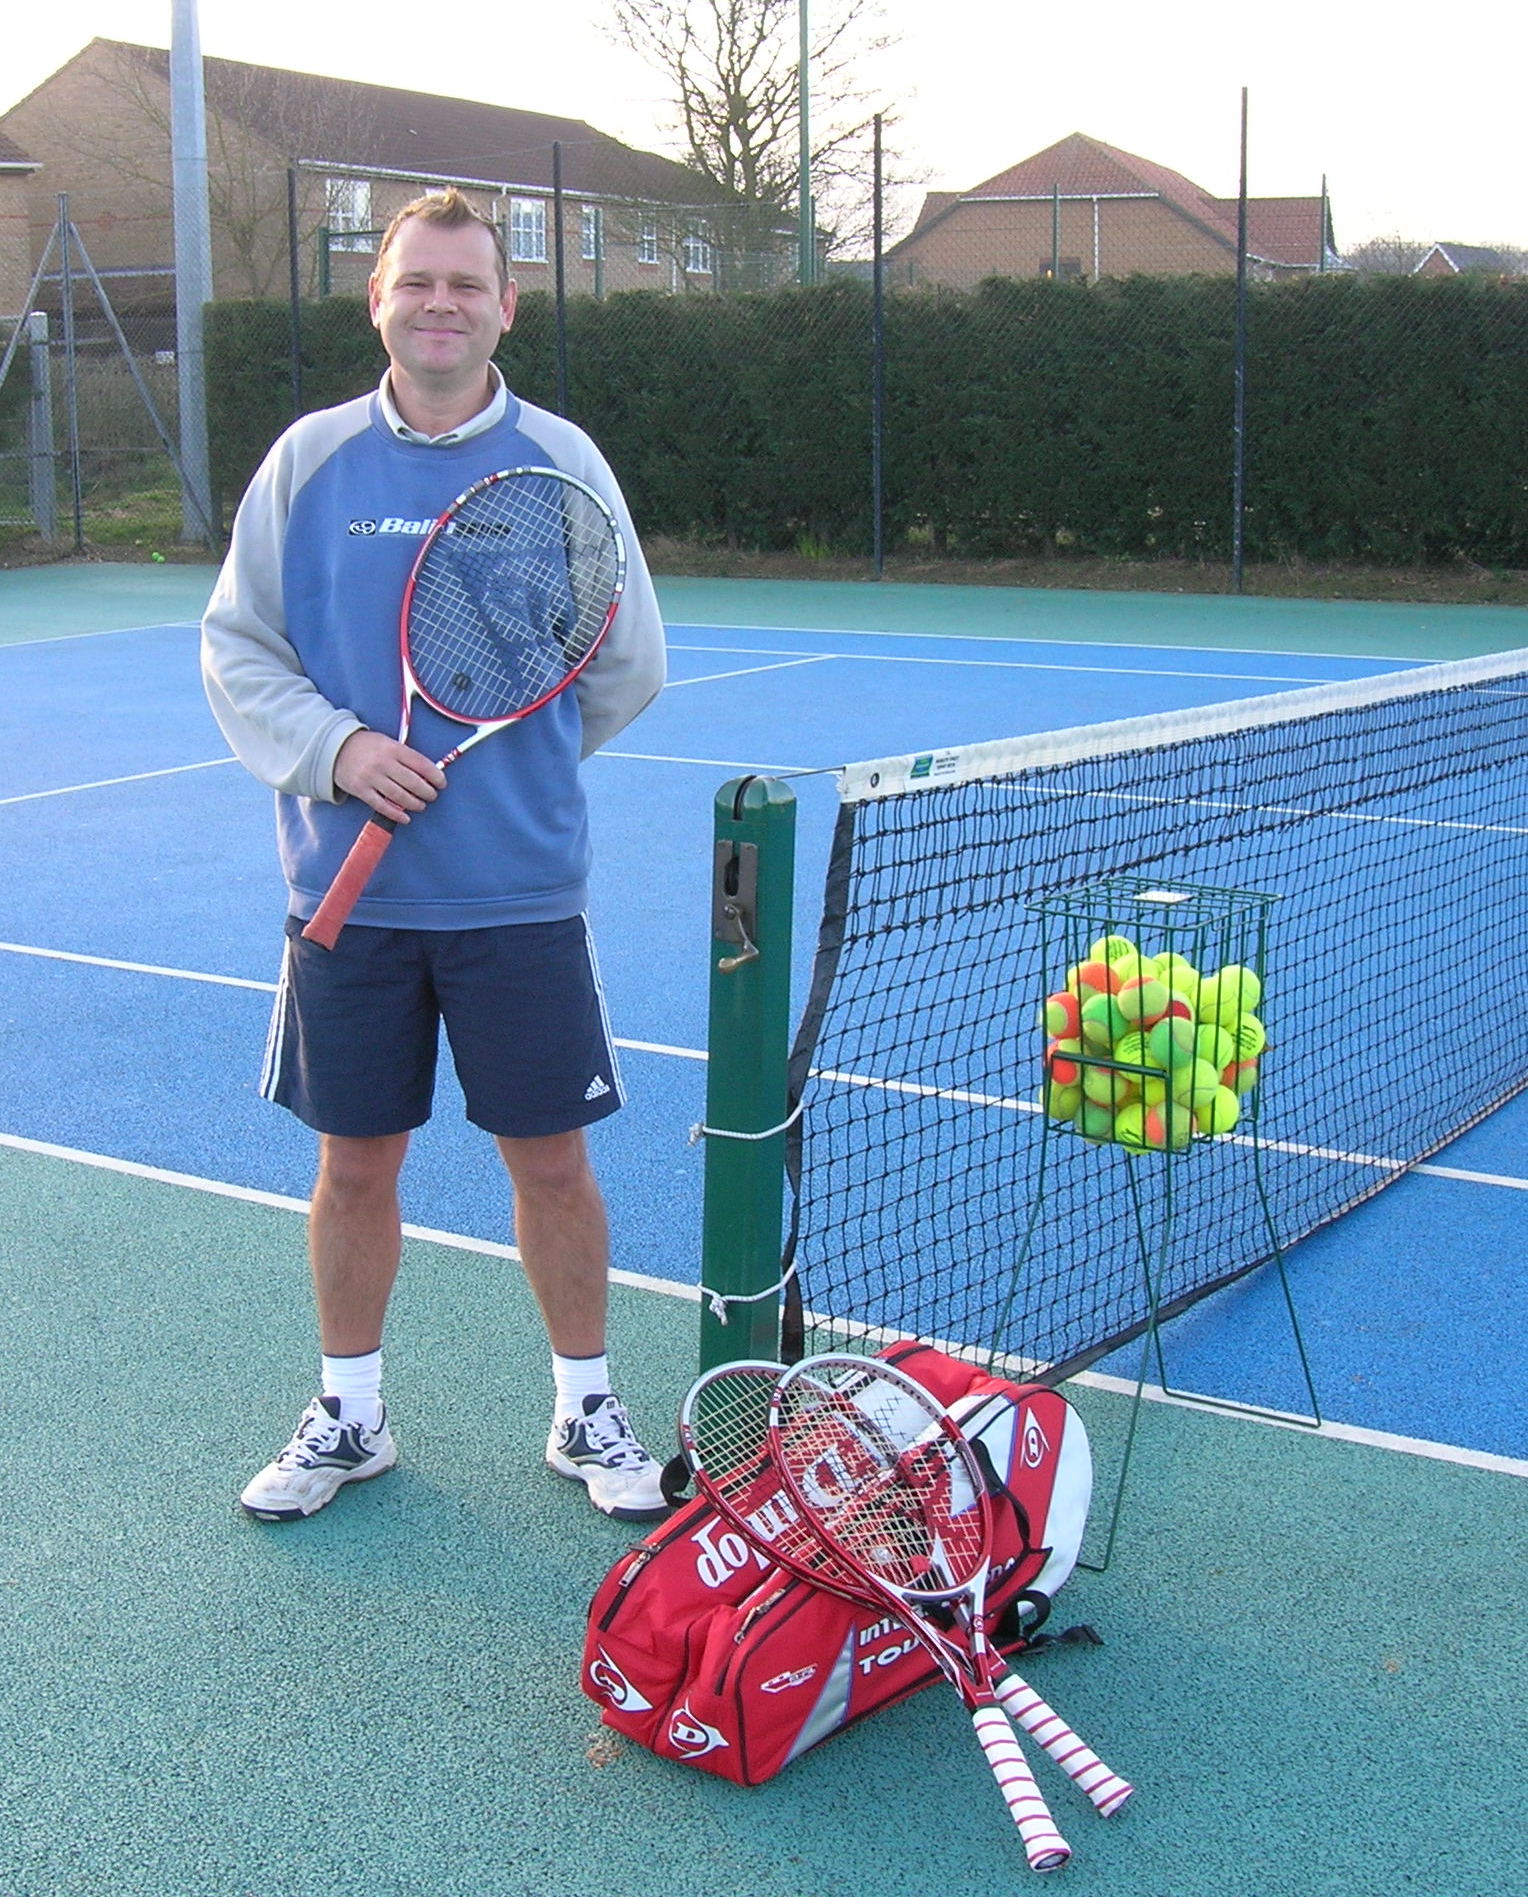 Martin Denny, tennis coach at Woodbridge Tennis Club in Suffolk